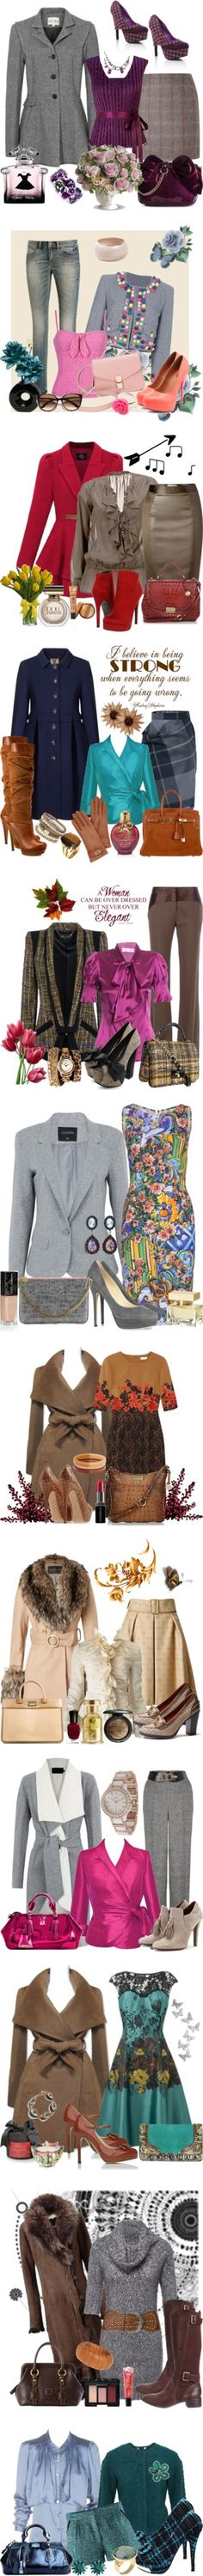 """""""Outfit 1"""" by milica-b3 ❤ liked on Polyvore"""